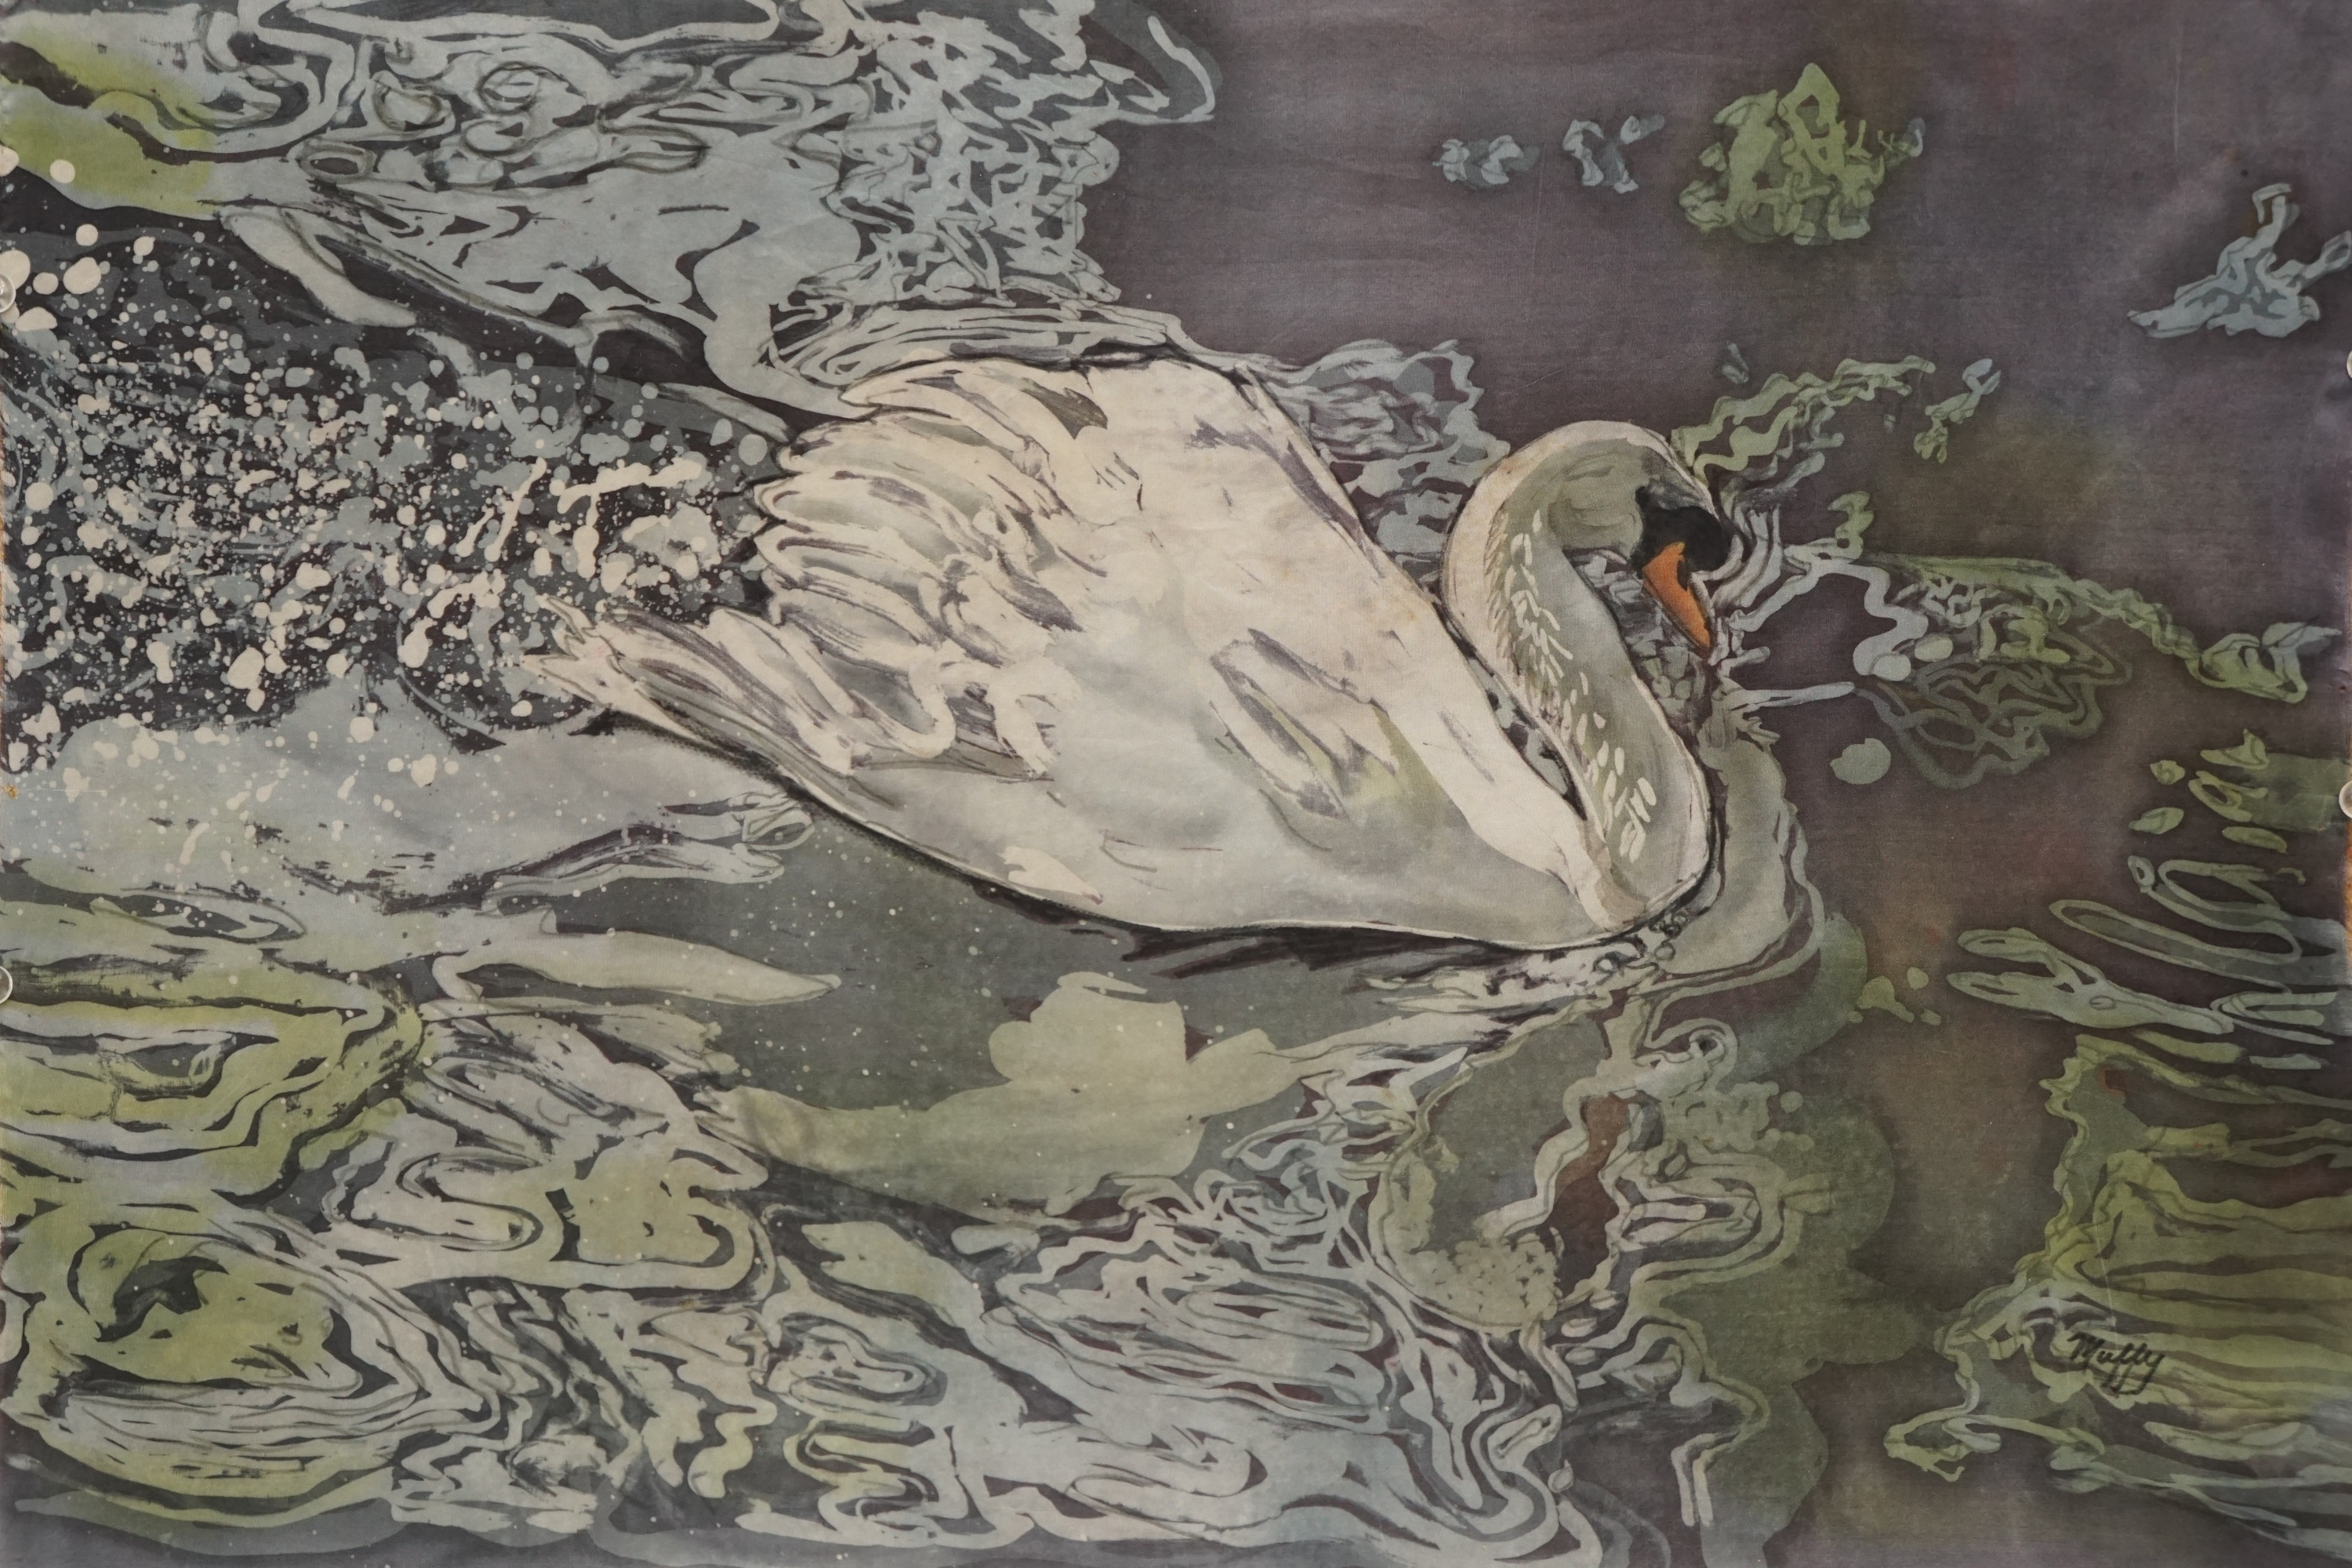 Muffy clark gill silver swan rozome on silk 22 x 26 in  2018 yzipmt